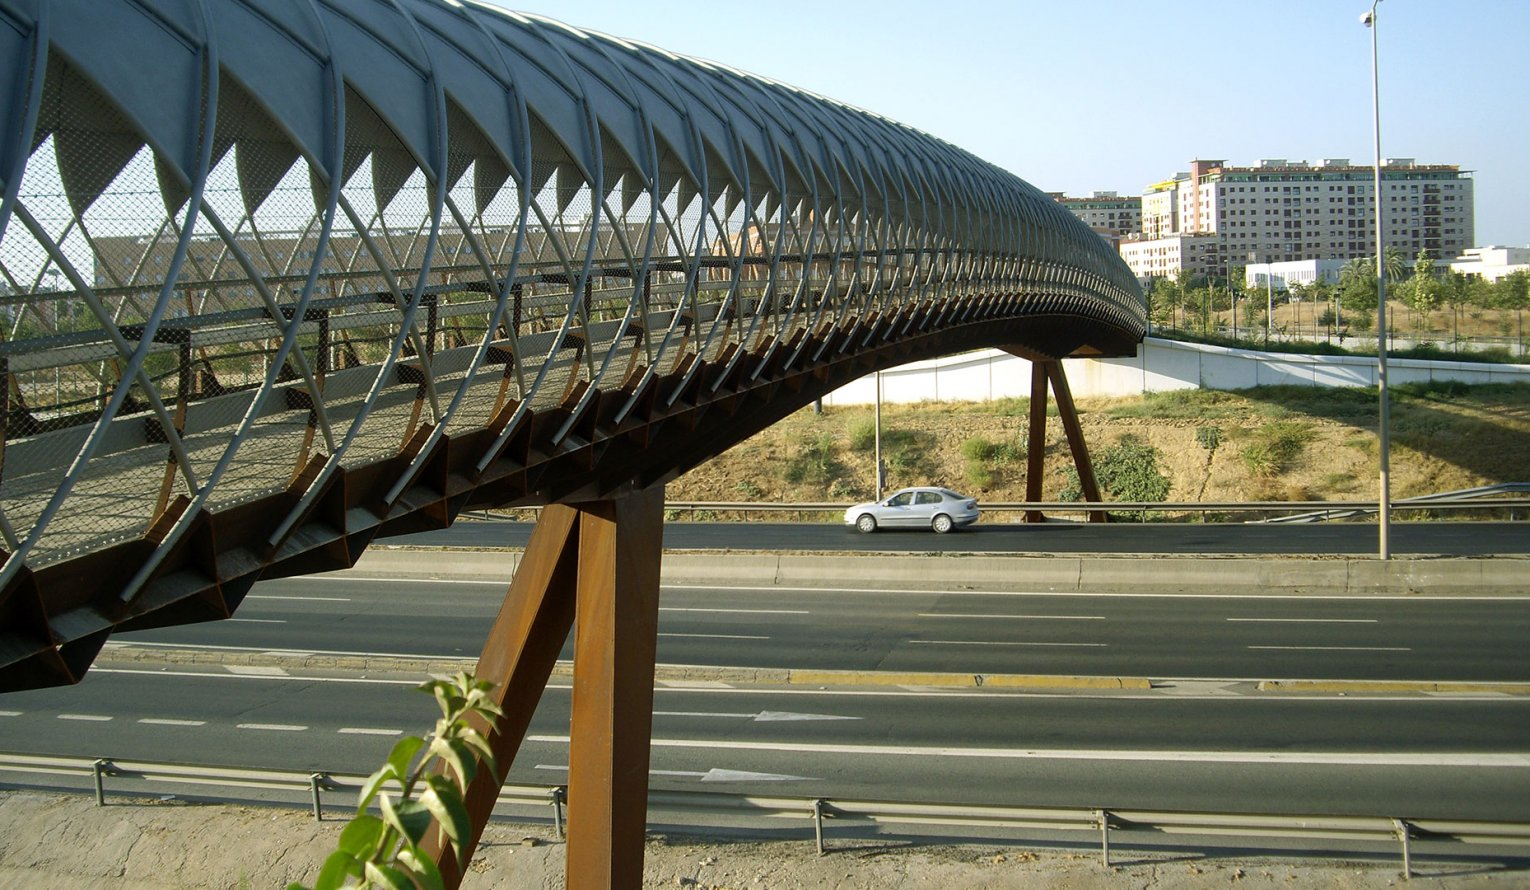 Bridge over Highway SE-30 – Palmas Altas Campus